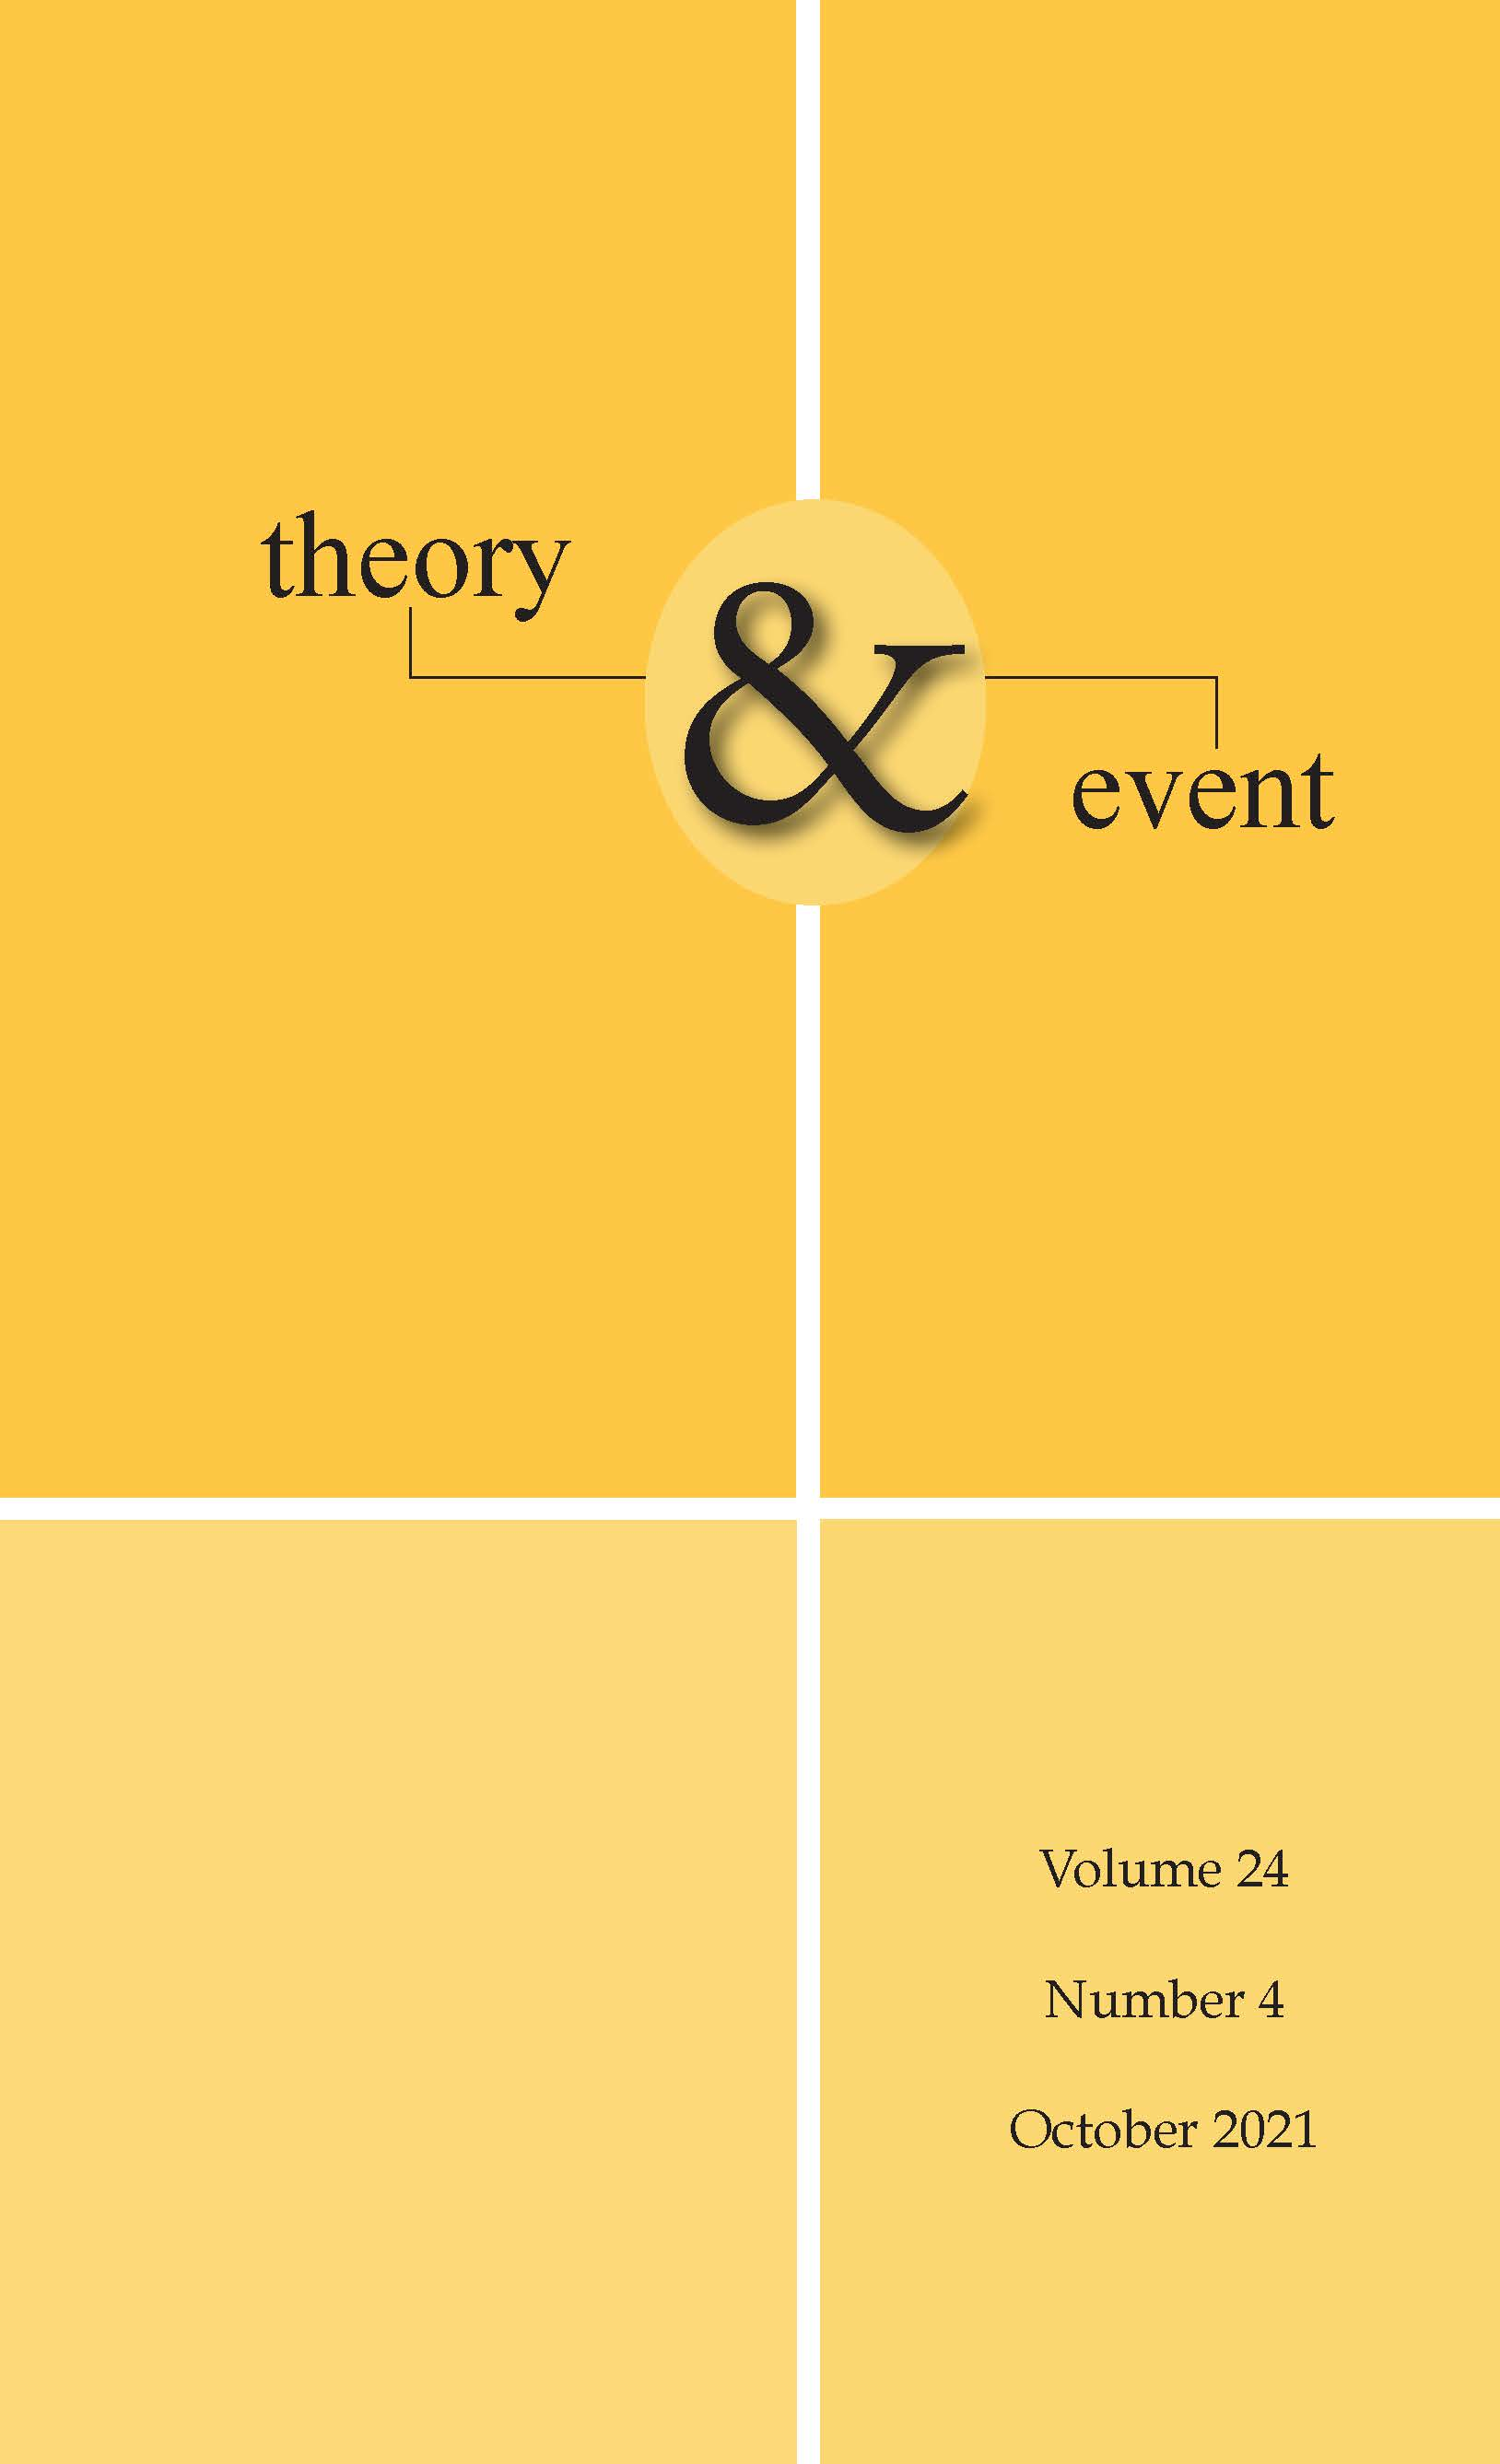 Theory & Event: Volume 24, Number 4, October 2021